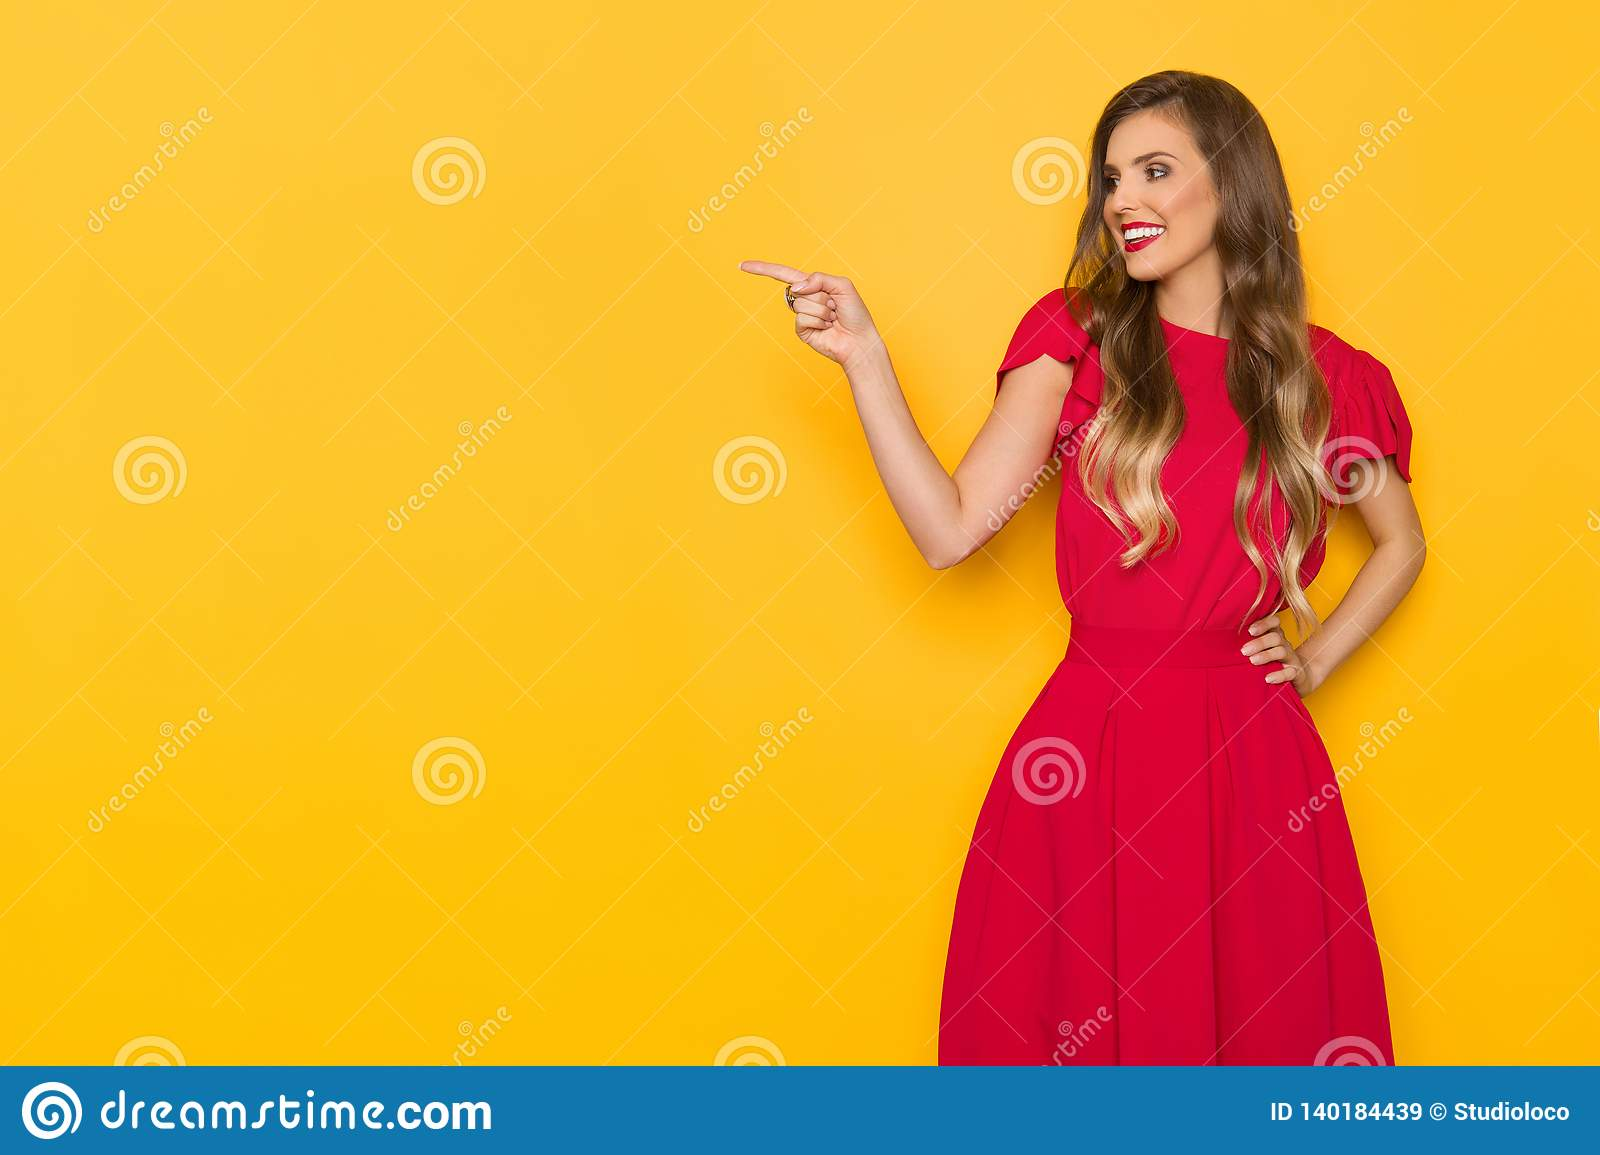 Beautiful Smiling Young Woman In Red Dress Is Pointing And Looking Away